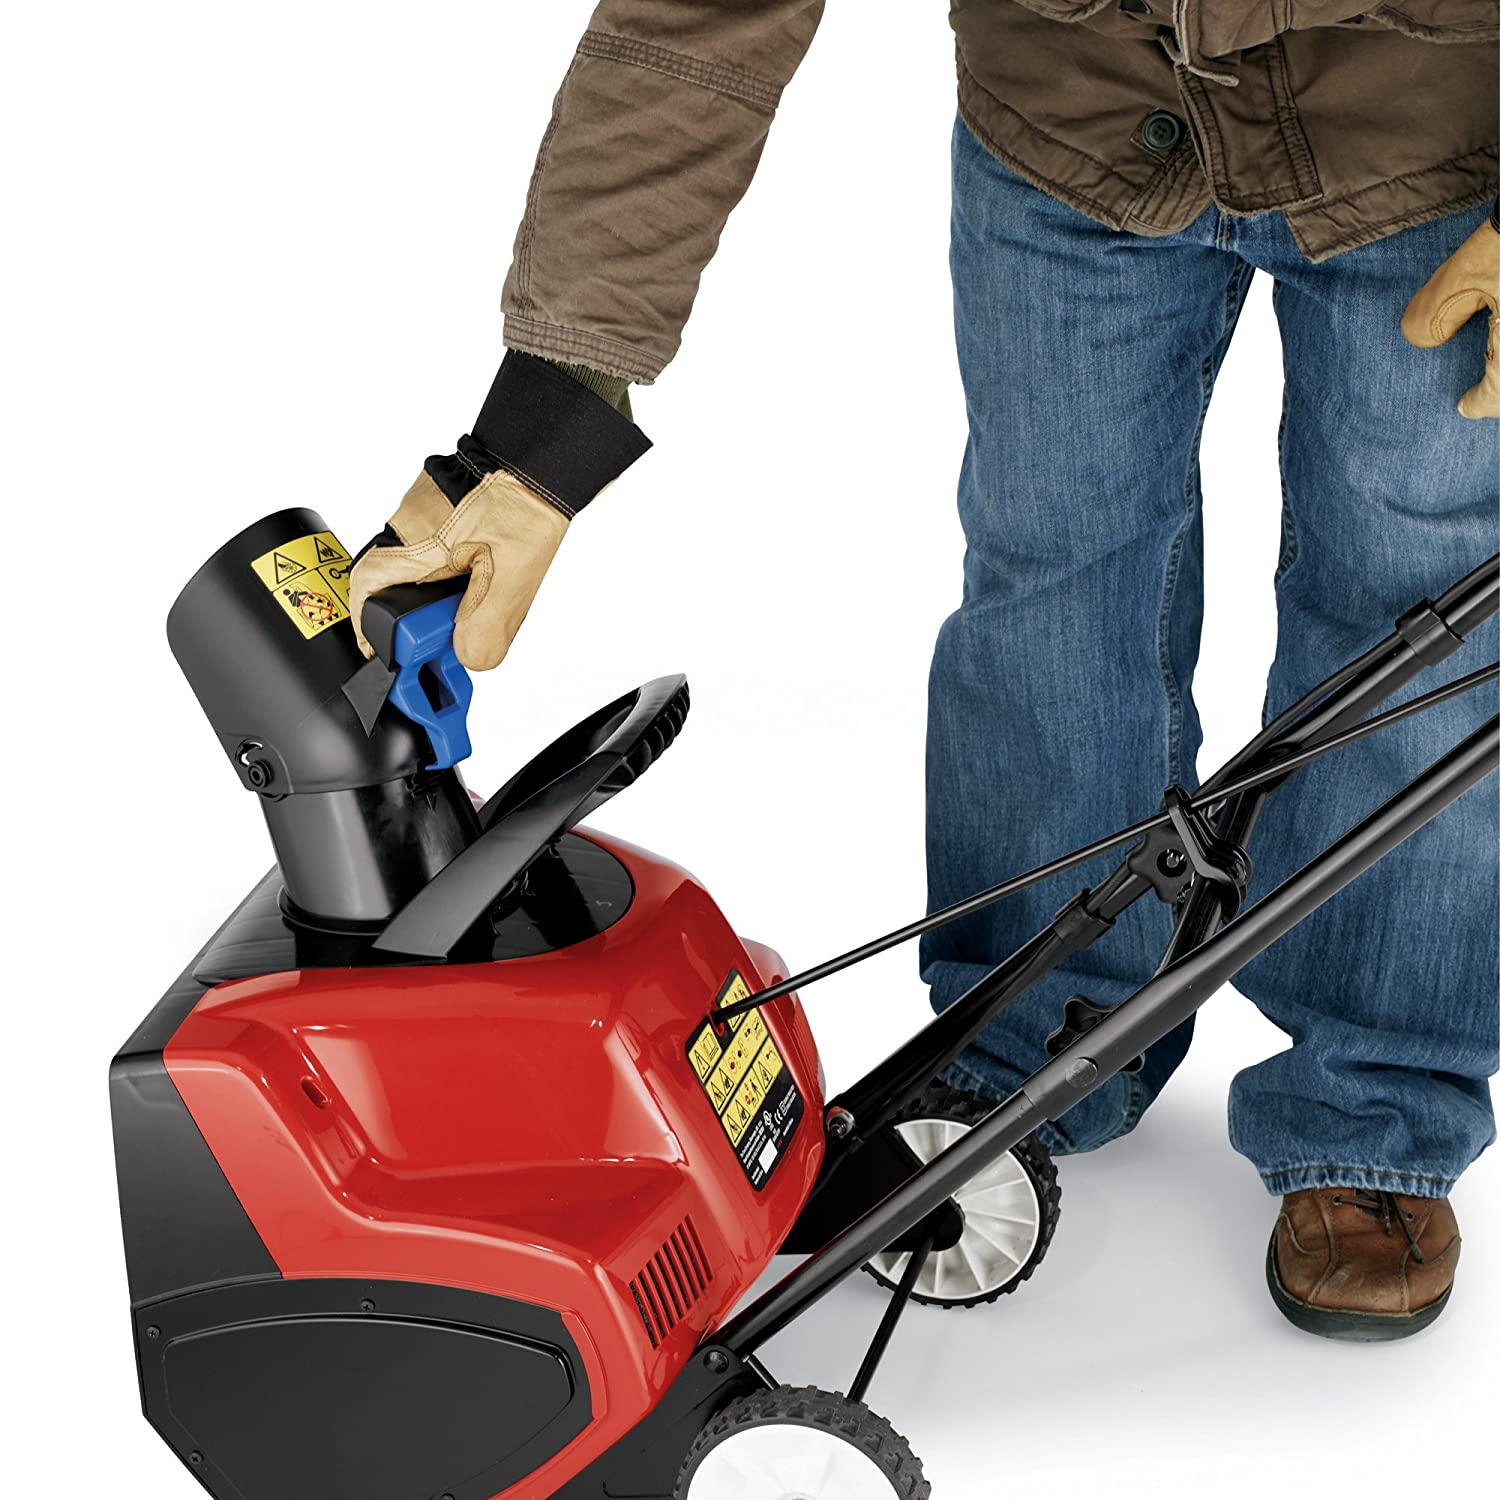 Best Snow Blower Reviews and Buying Guide 4